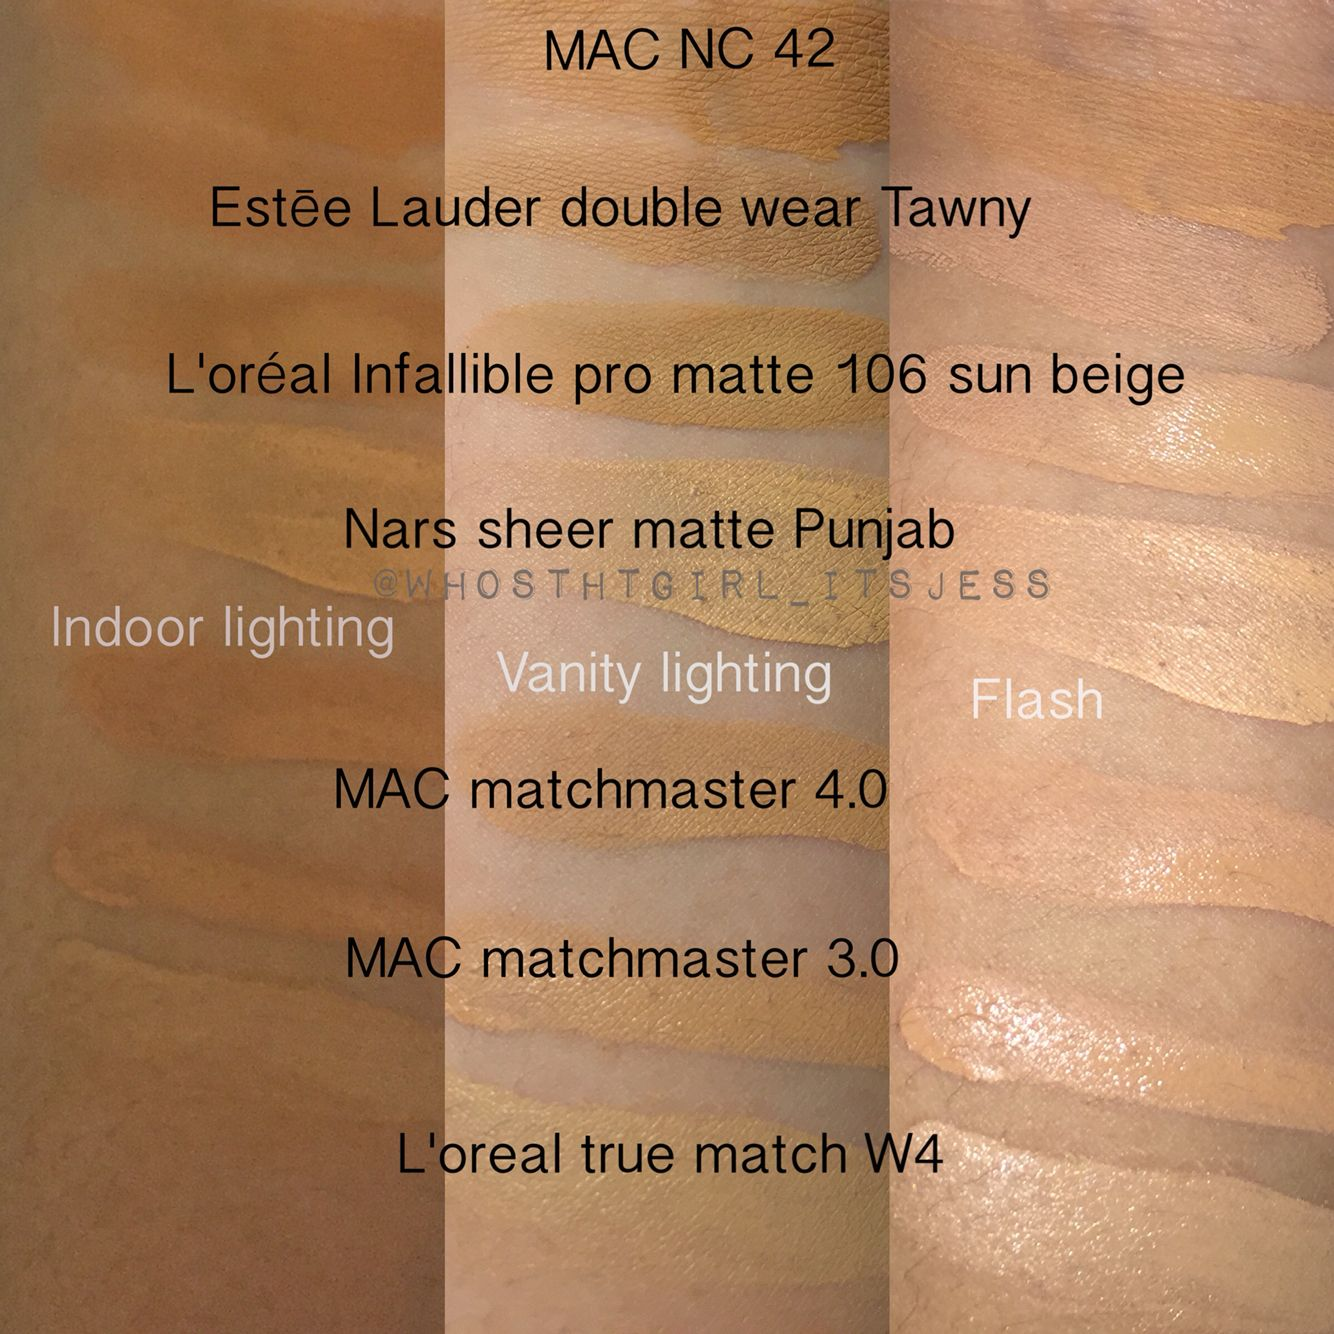 Seasonal Shades Liquid Foundation Swatches I Highly Recommend The